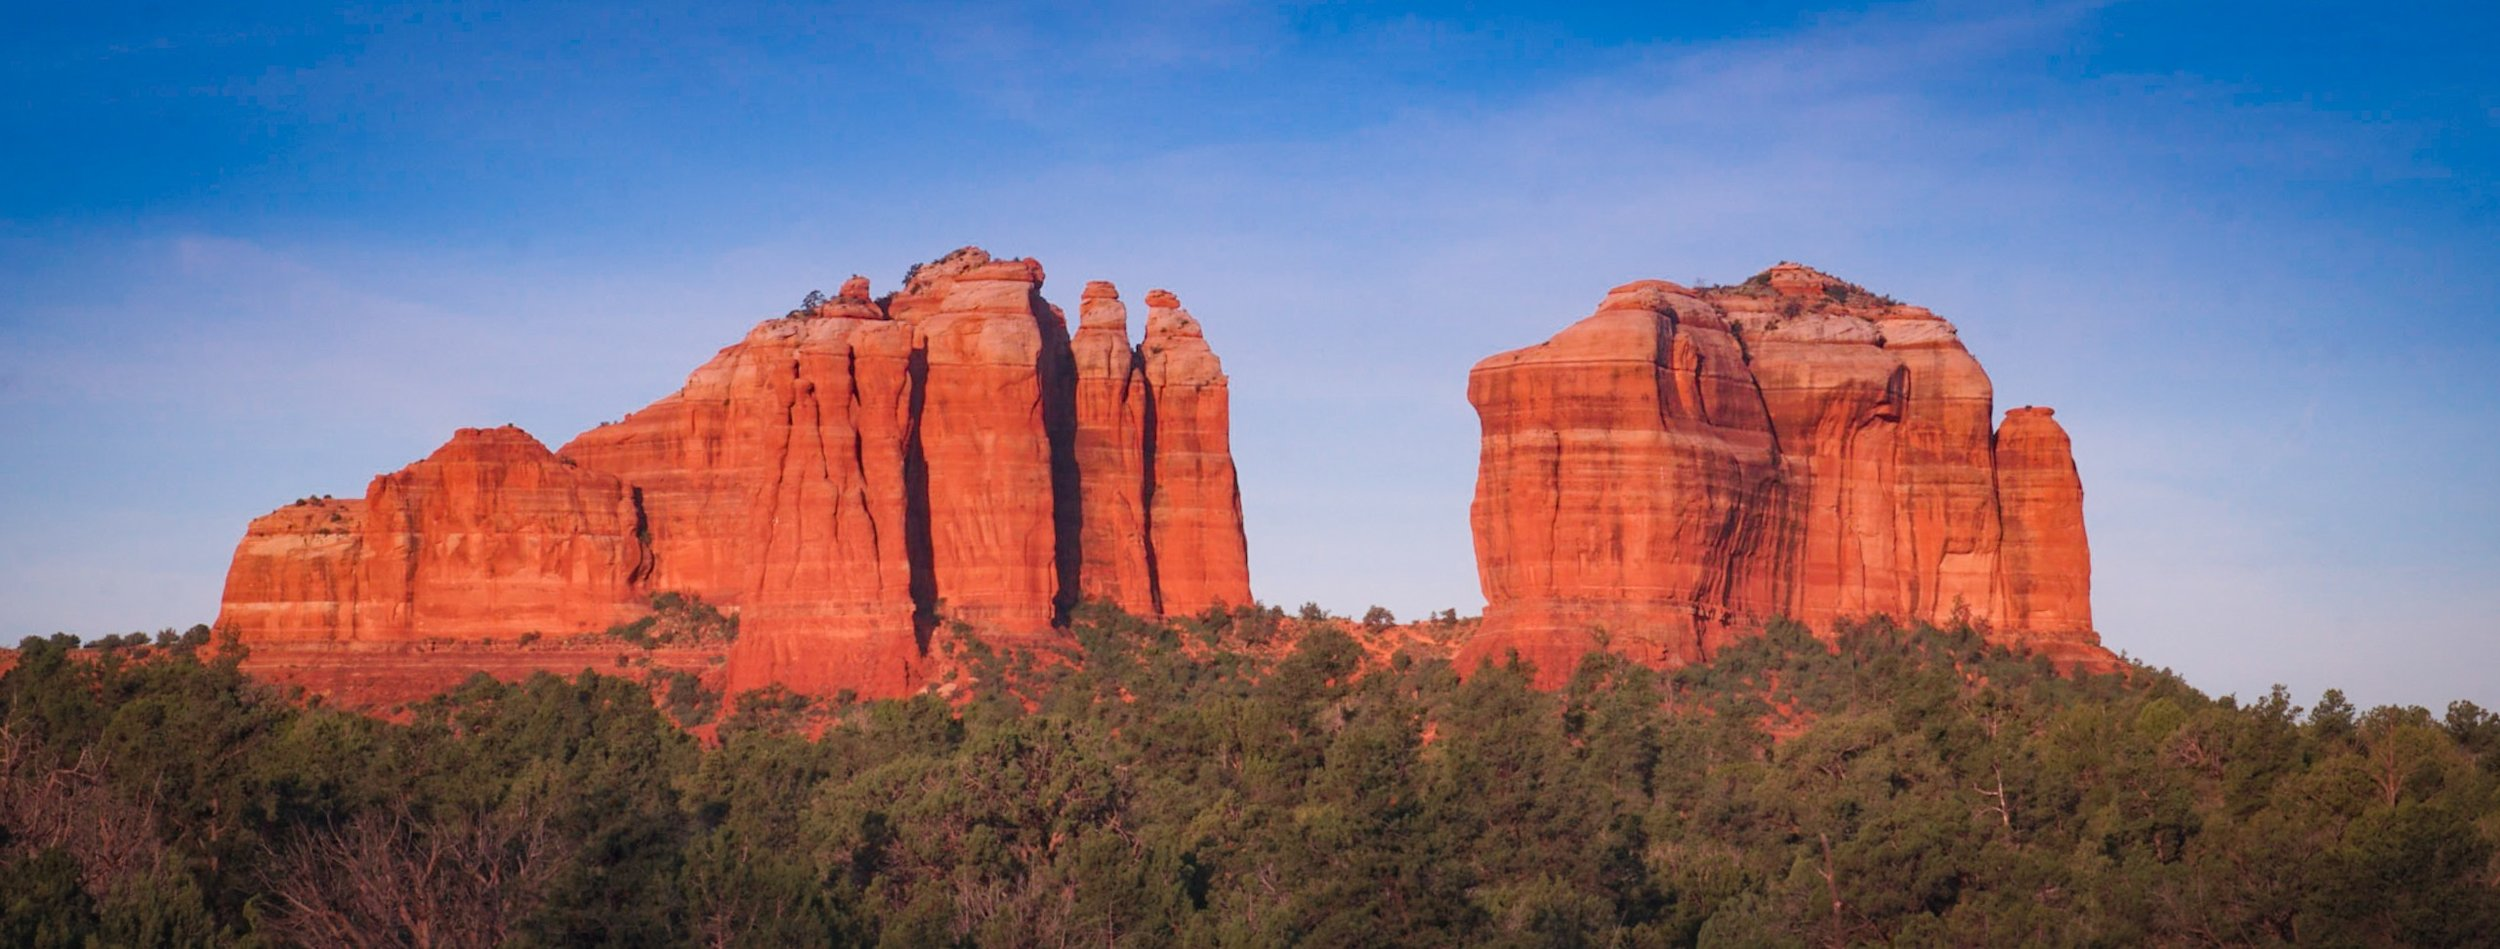 Cathedral Rock in Sedona, AZ by Scott Turnmeyer